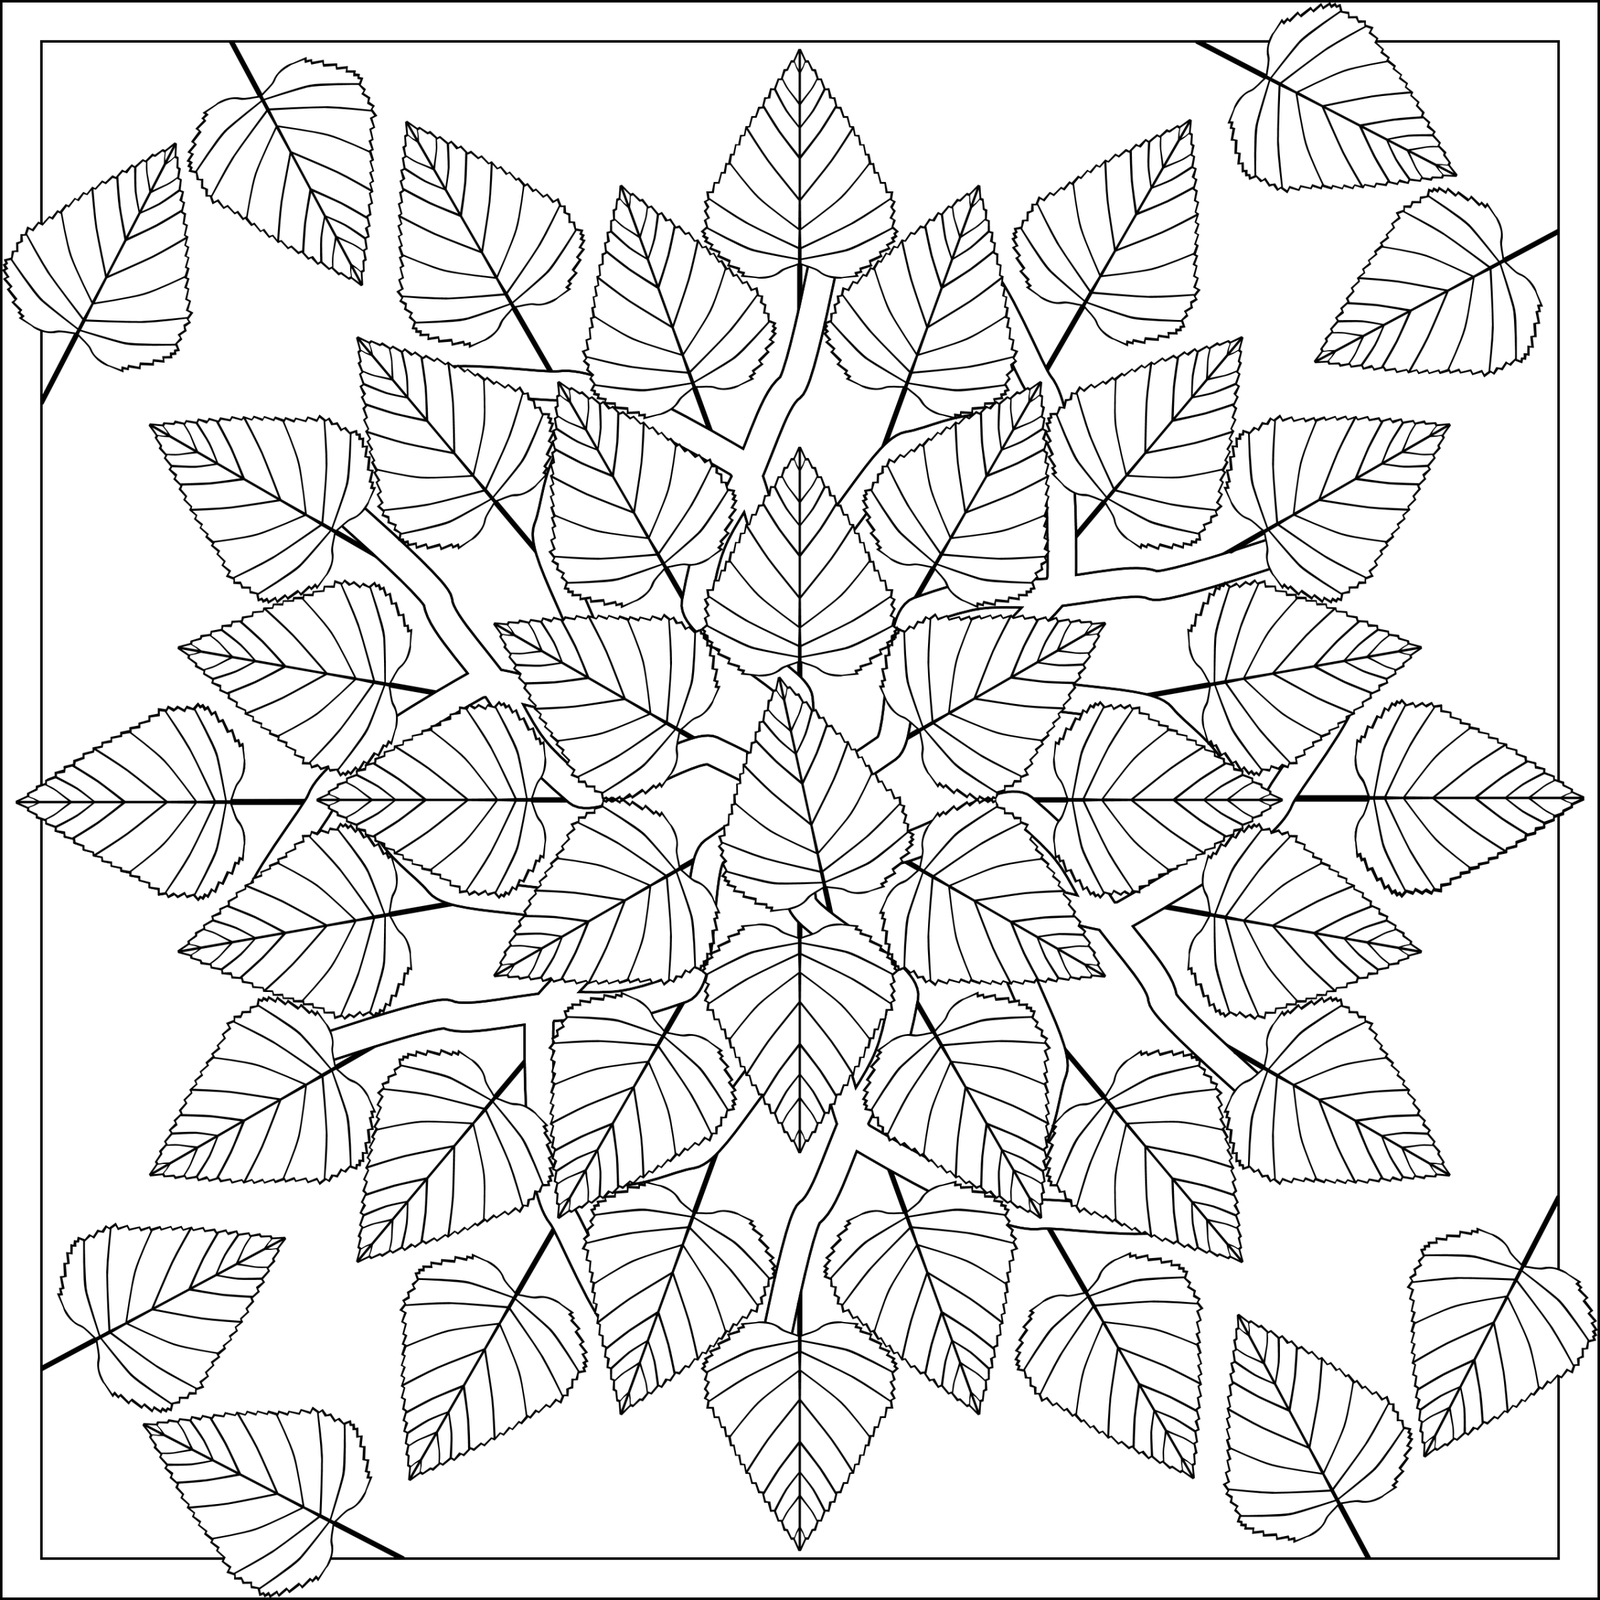 coloring page autumn 5 free fall coloring sheets autumn season coloring pages page autumn coloring